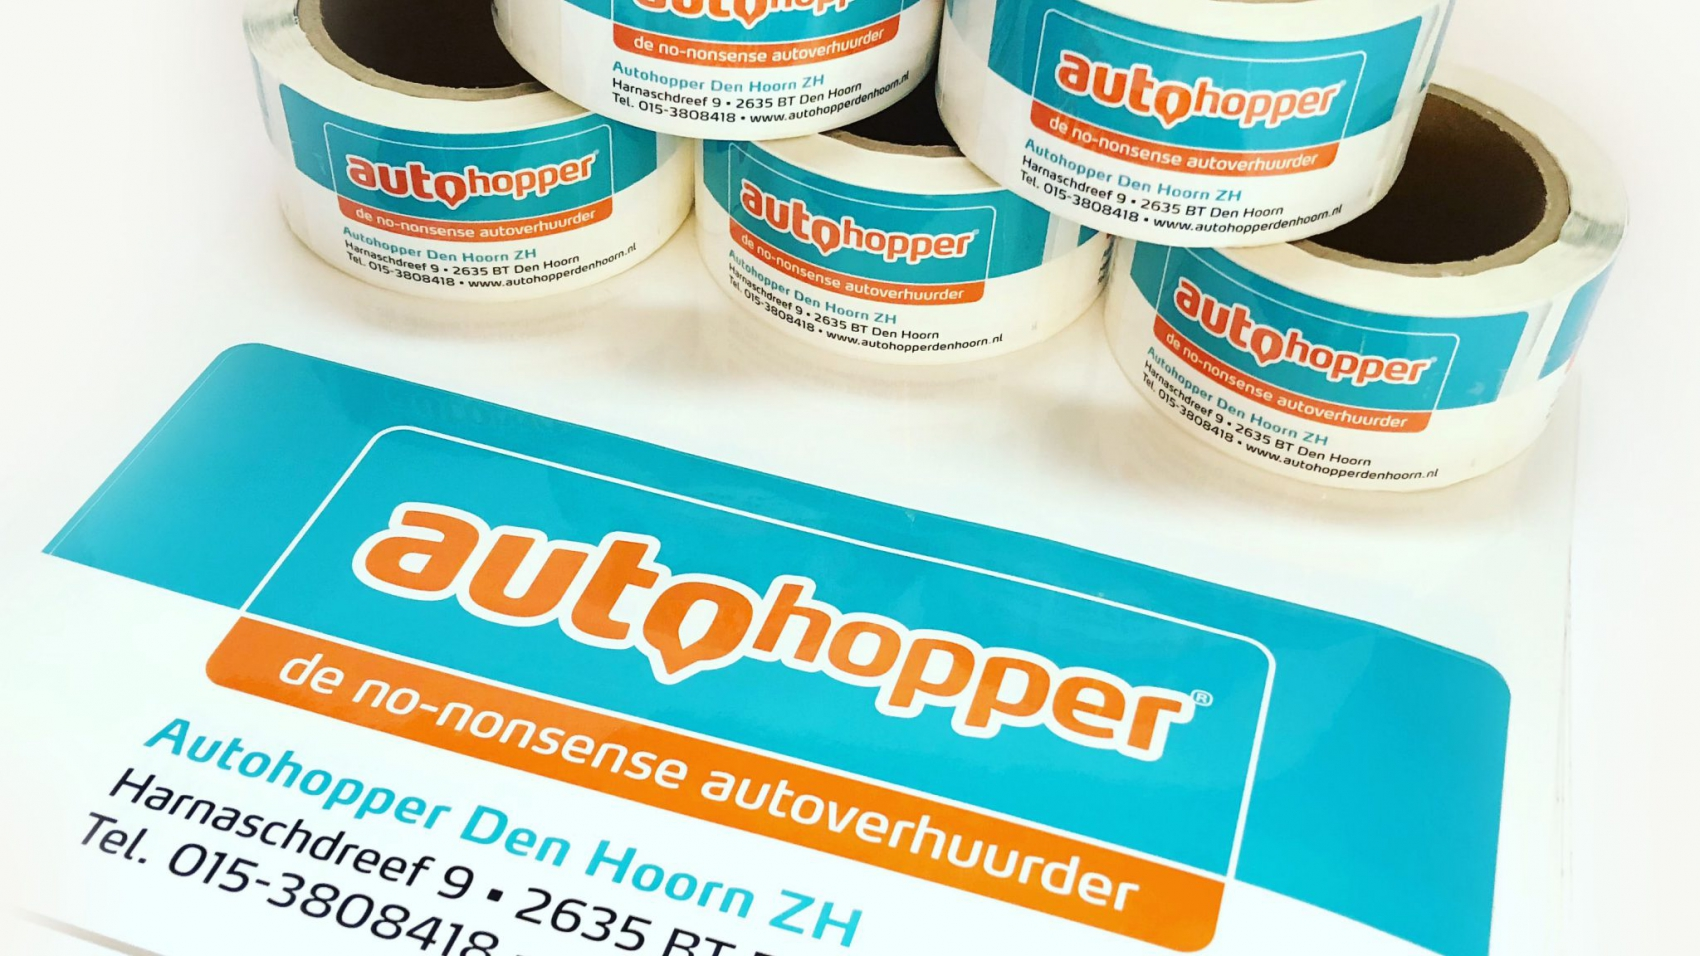 Autohopper stickers